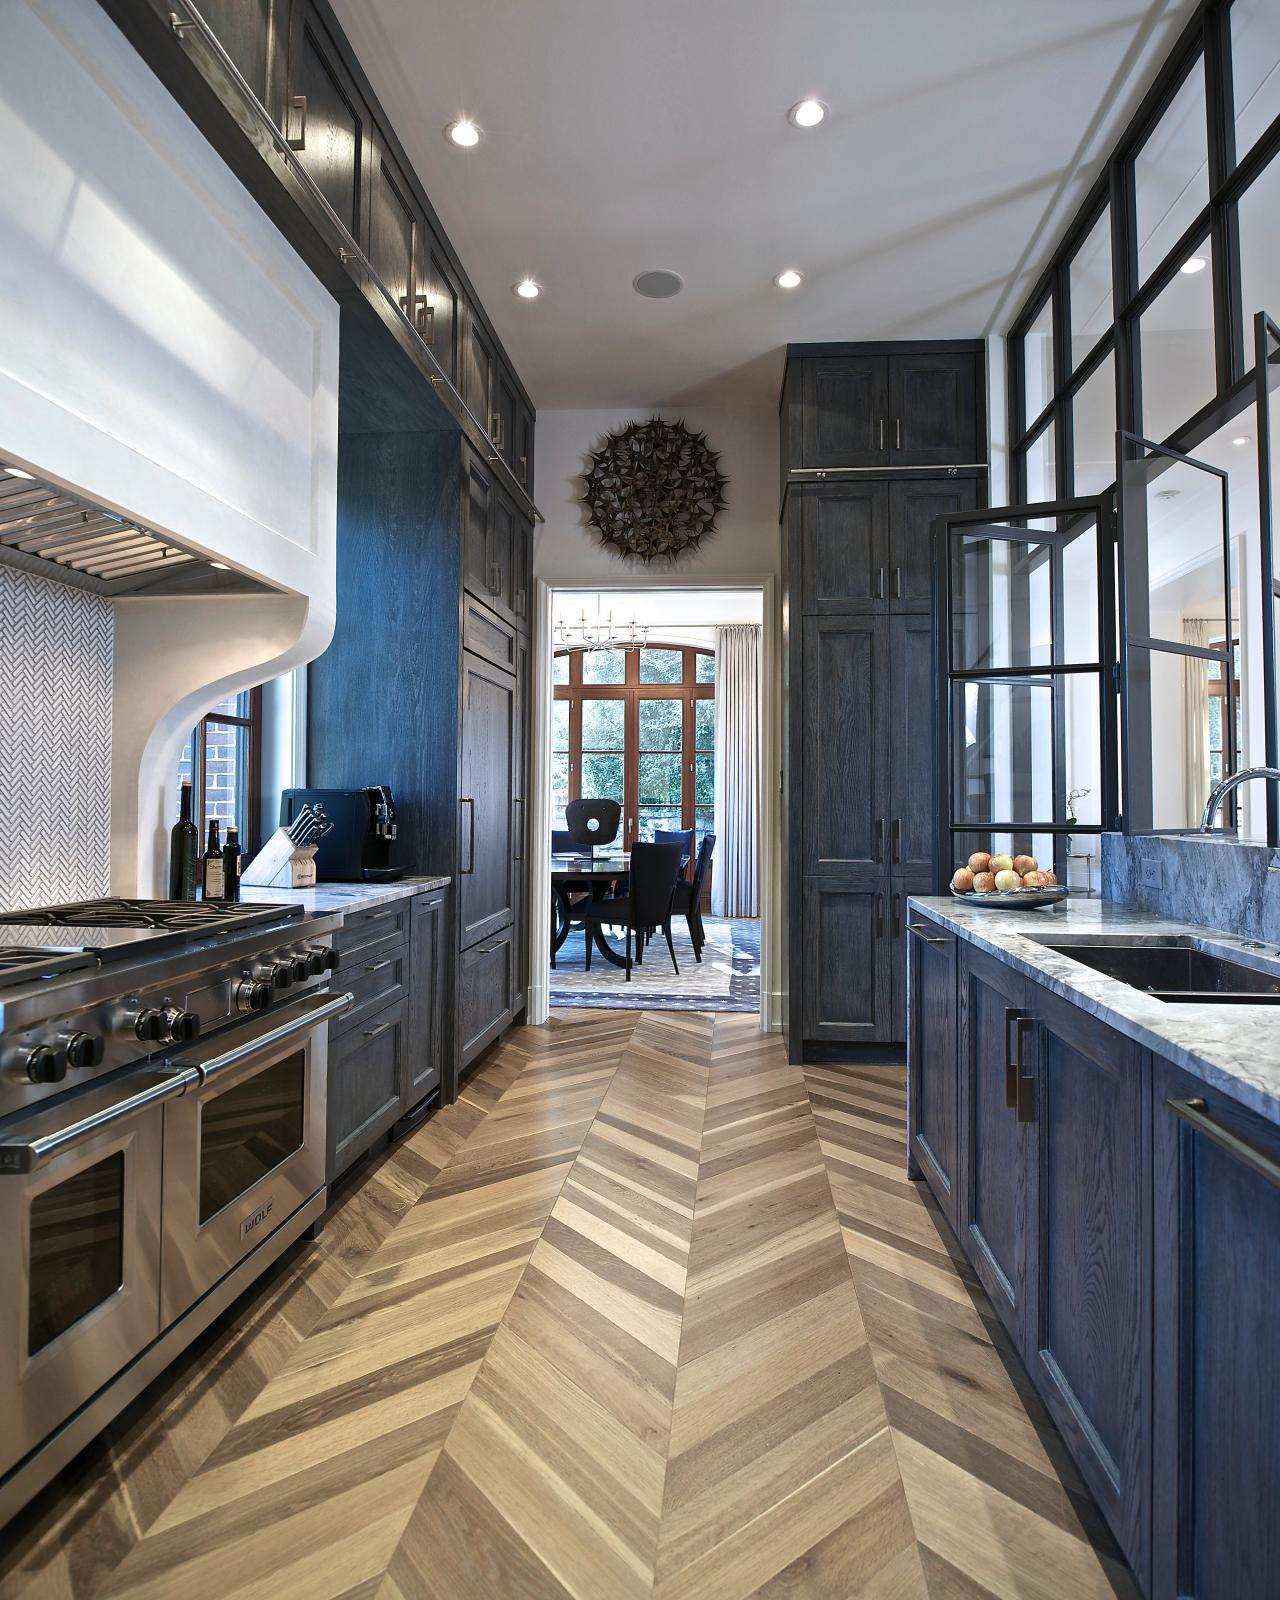 Galley Kitchen Flooring Ideas: Chevron Wood Floors Take Center Stage In Galley Kitchen